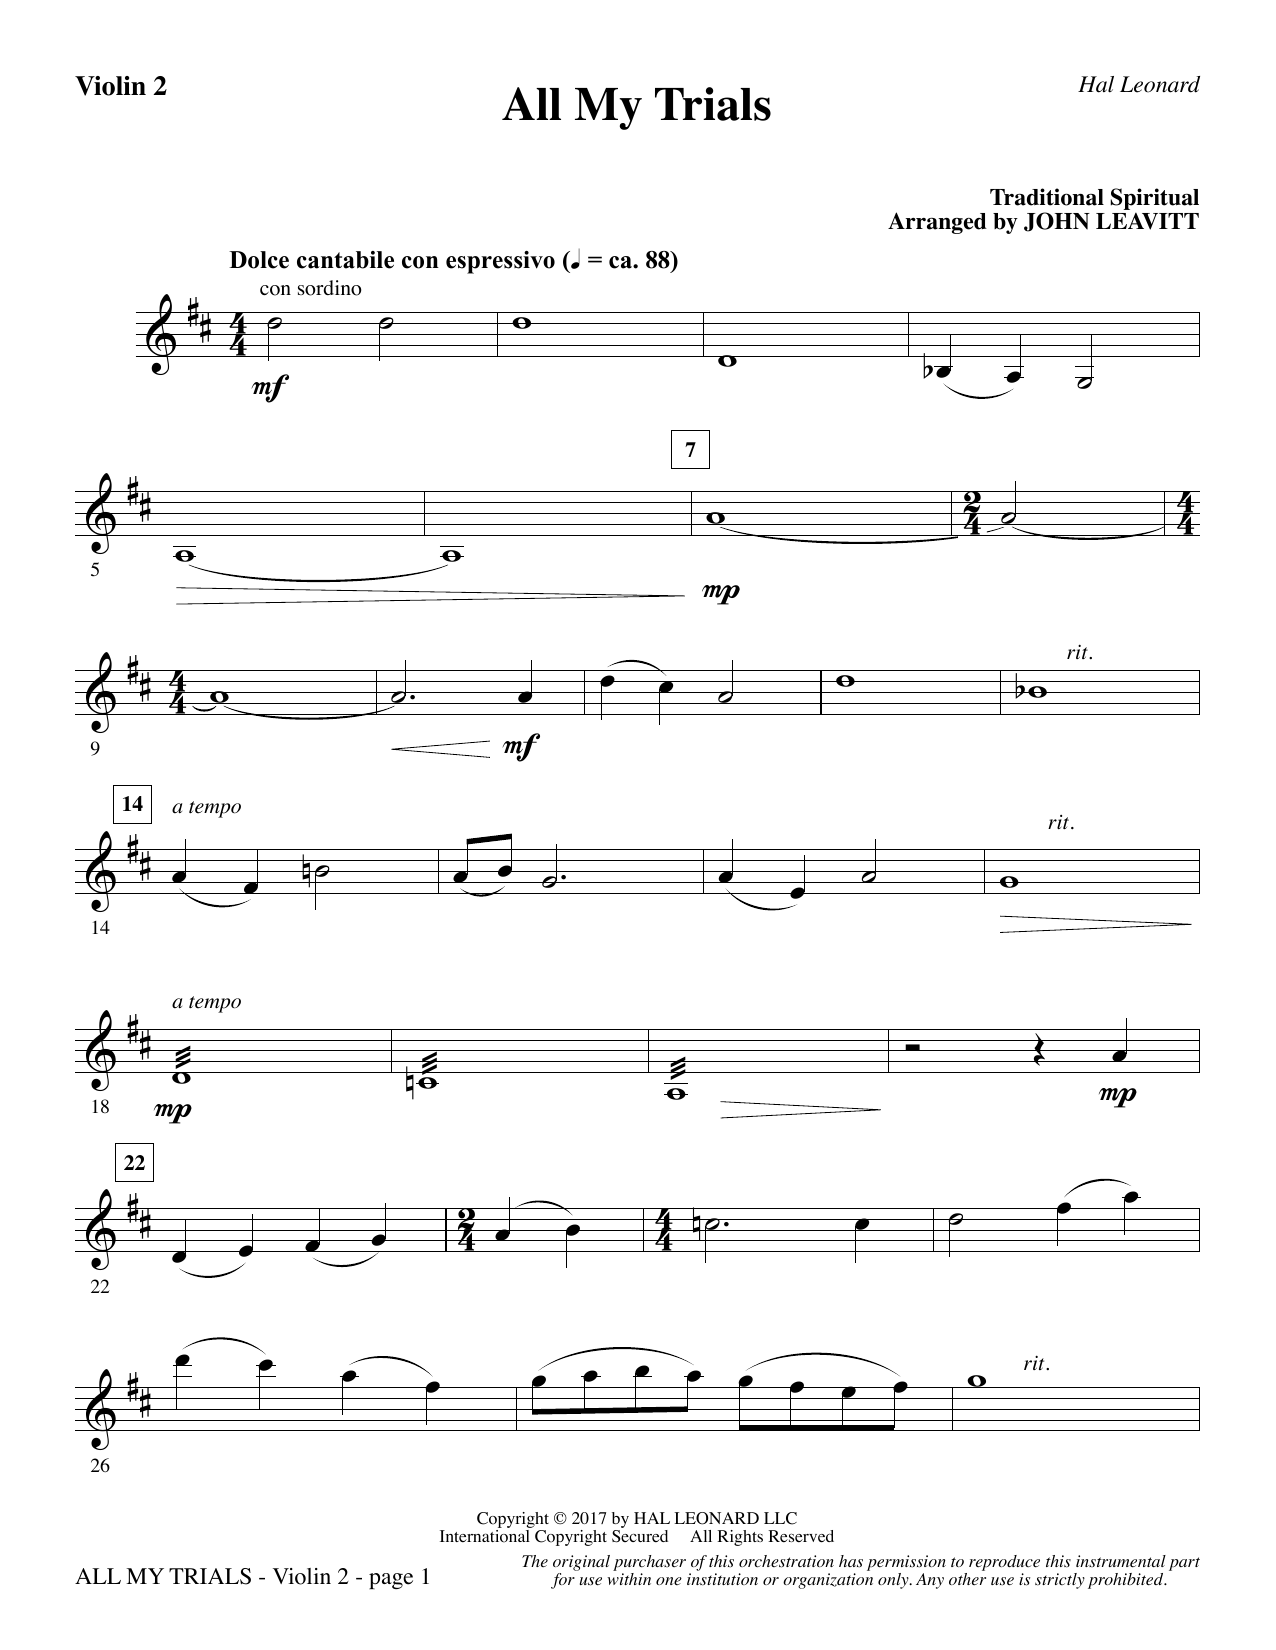 John Leavitt All My Trials - Violin 2 sheet music notes and chords. Download Printable PDF.